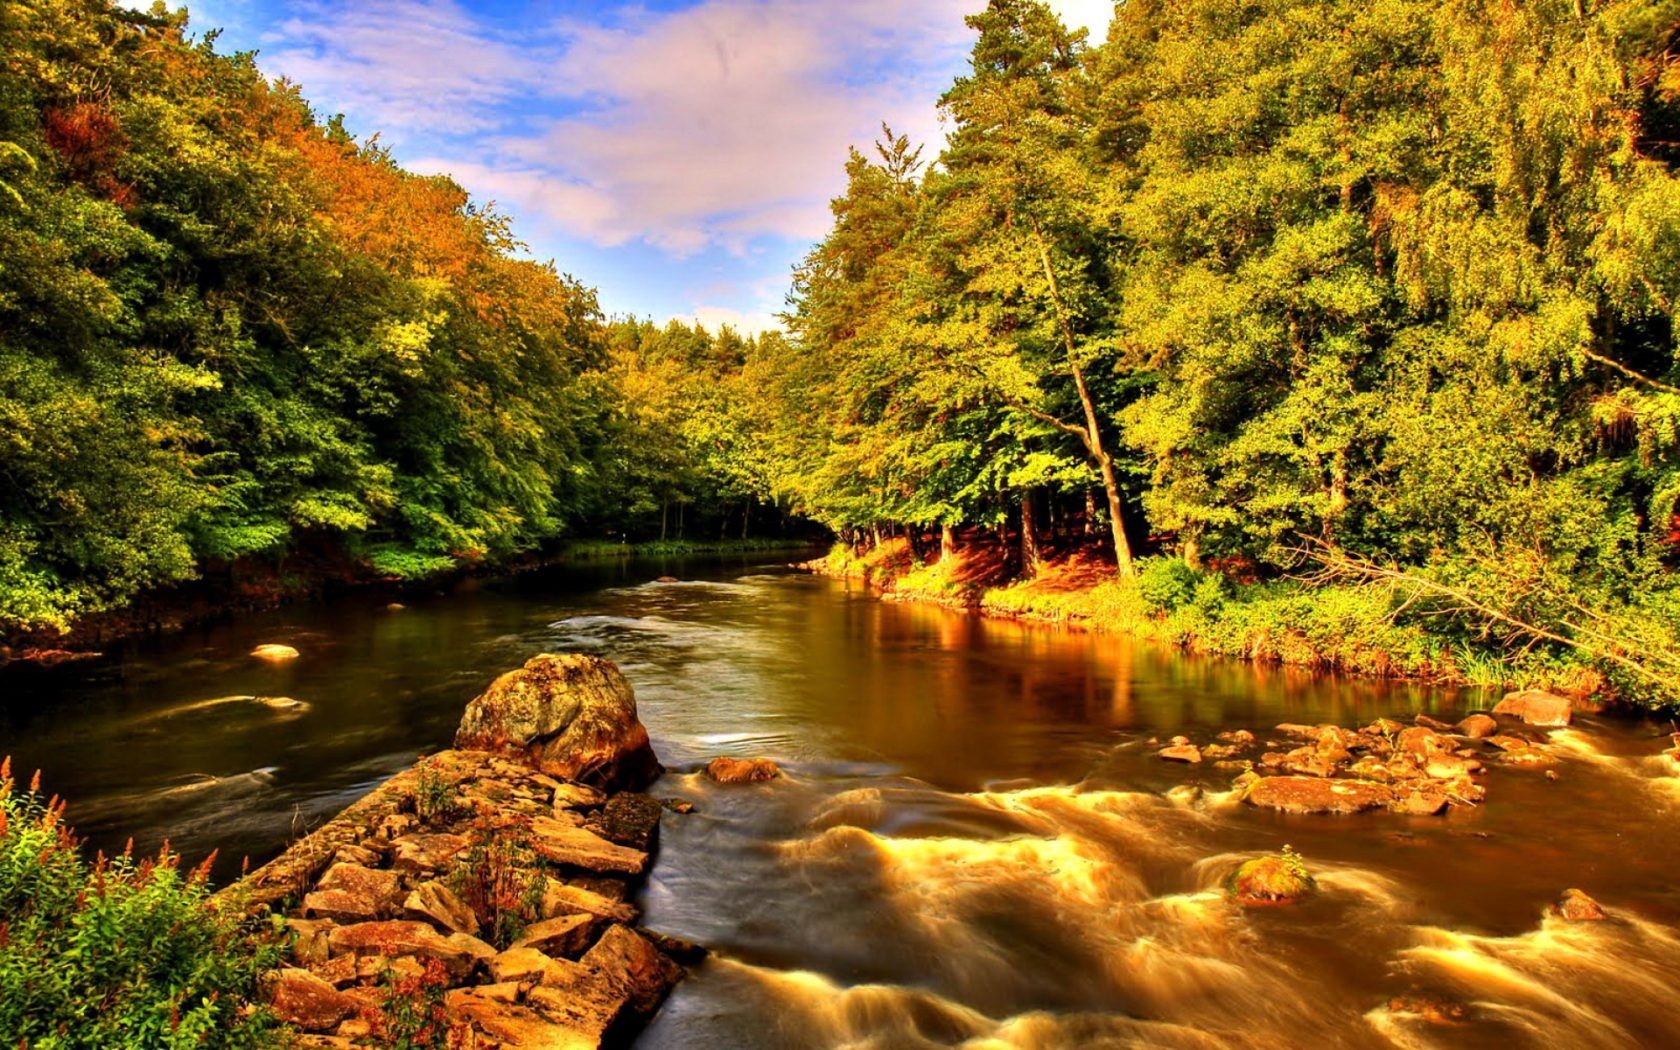 1680x1050 Fall Wallpaper Beautiful Nature Summer River Creek Shore Trees Rocks